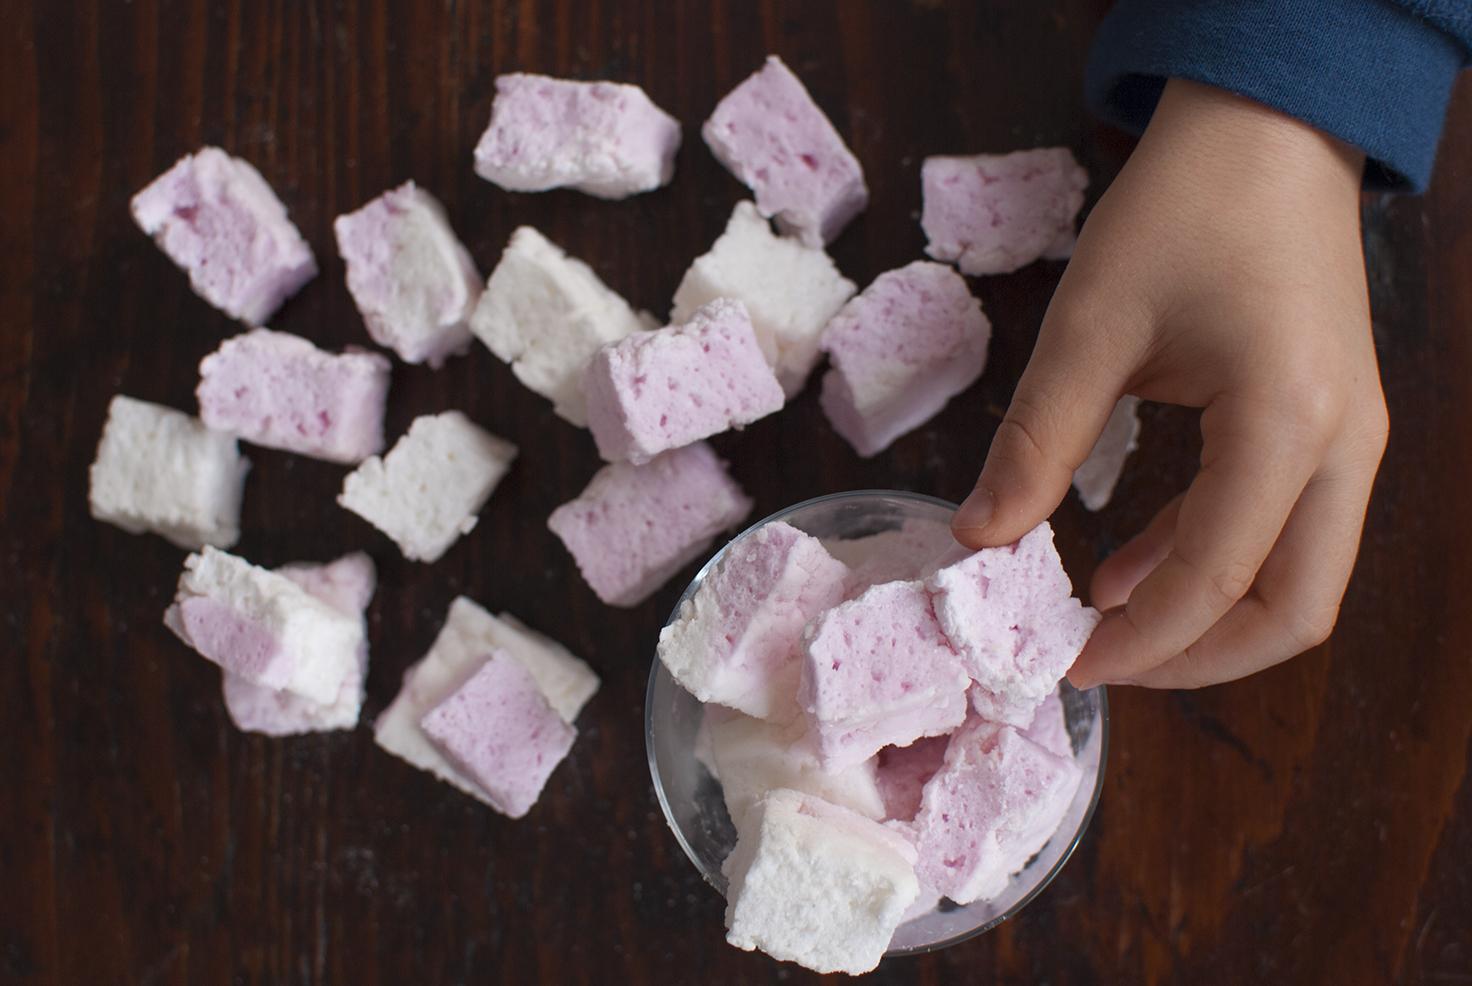 Marshmallows Home Made Con La Ricetta Originale Americana Senza Albumi